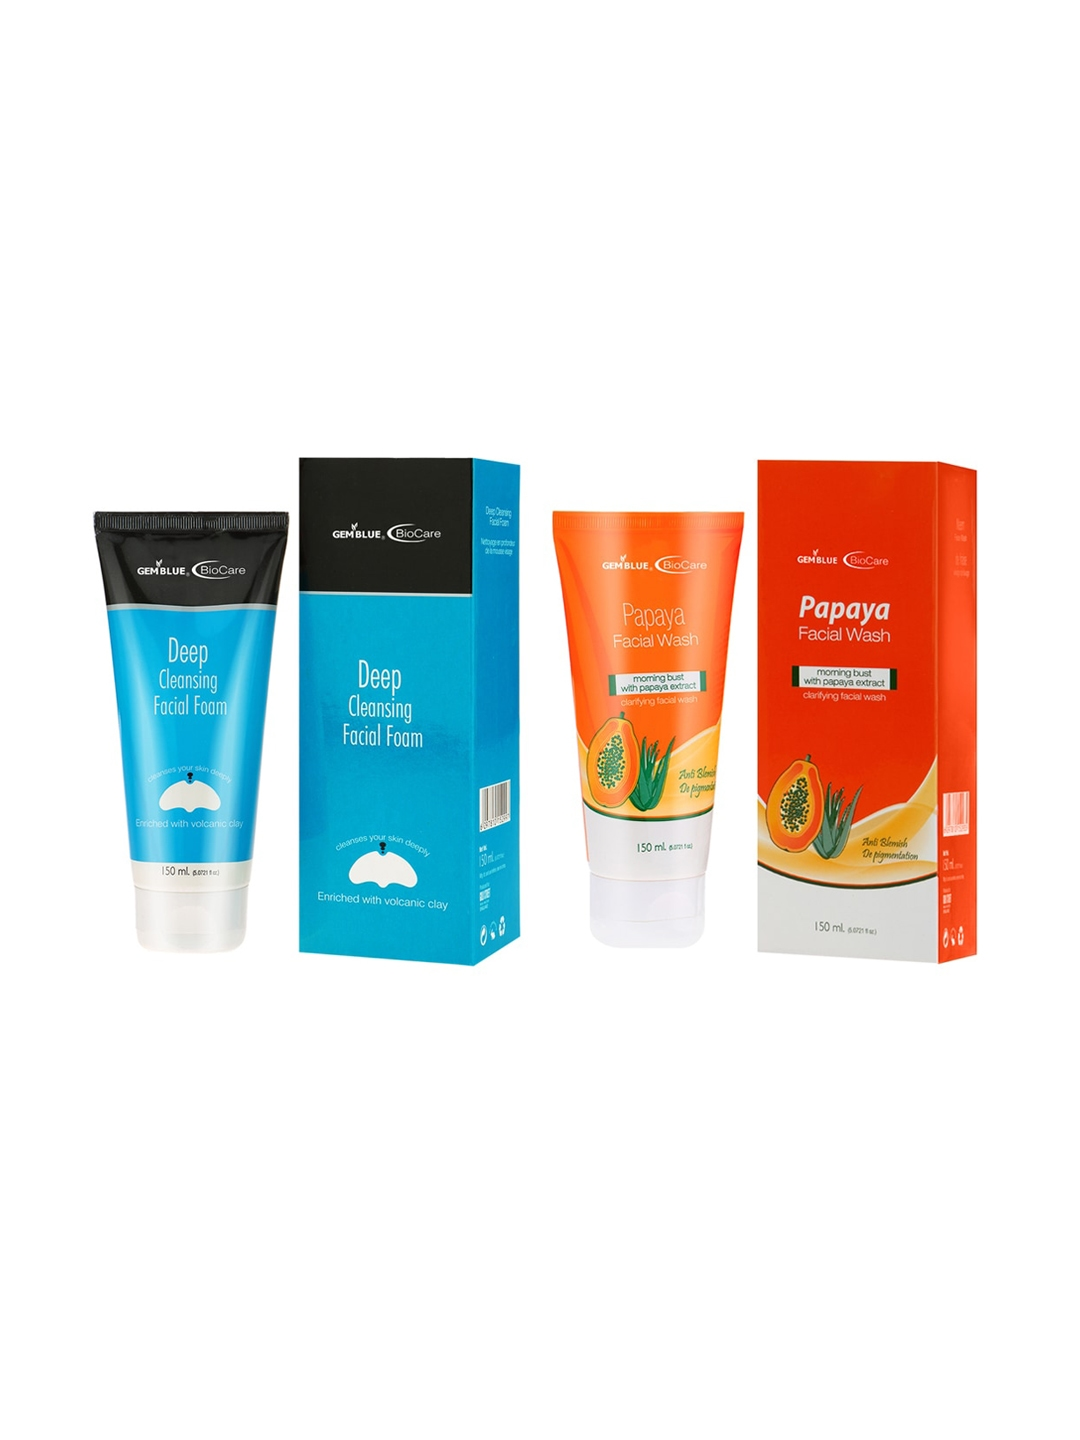 GEMBLUE BioCare Papaya Face Wash And Deep Cleaning Facial Foam 150 ml Each Combo of 2